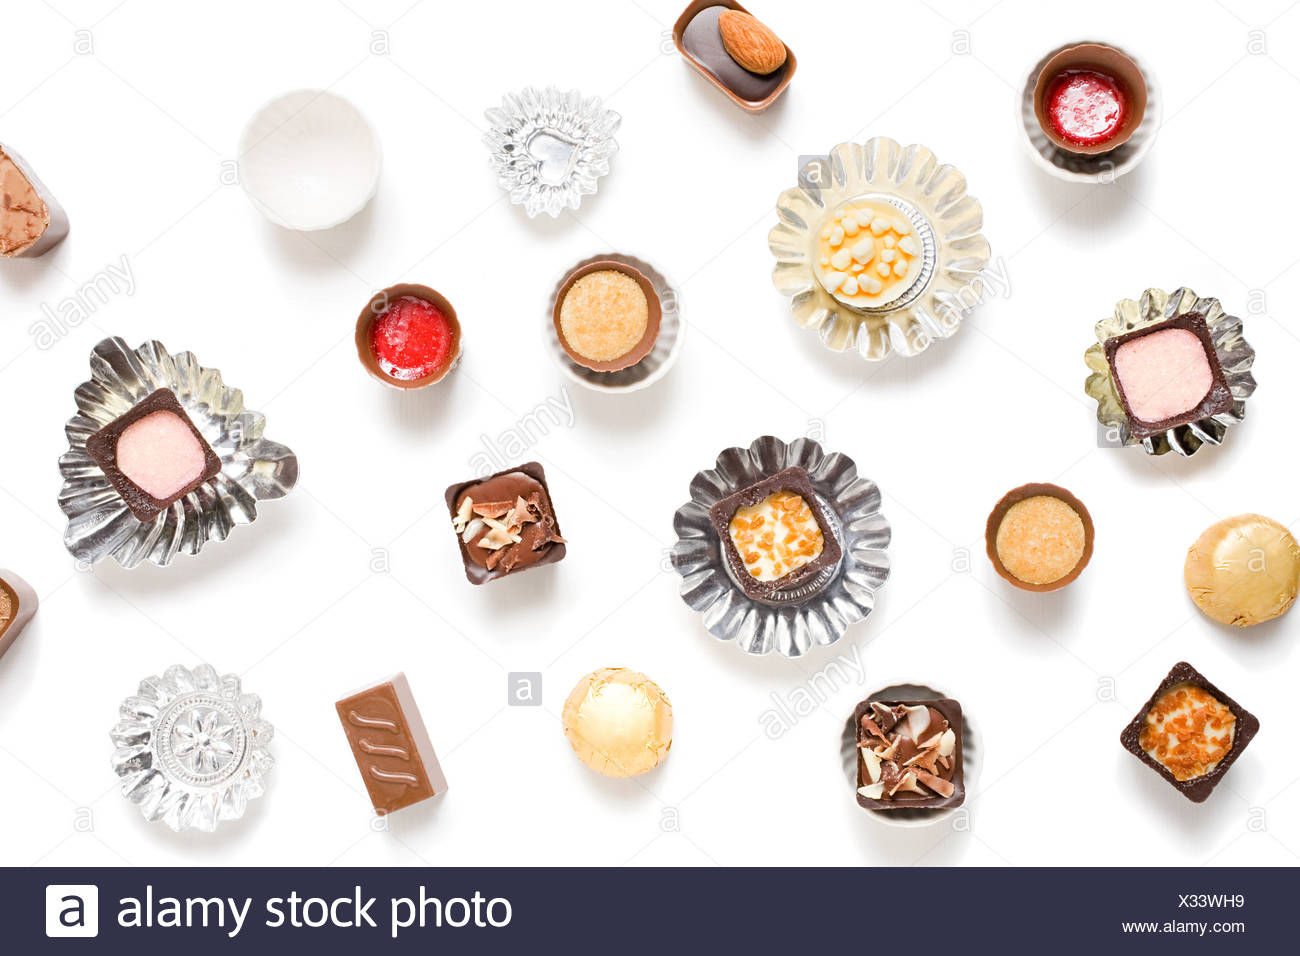 Chocolates with cases - Stock Image